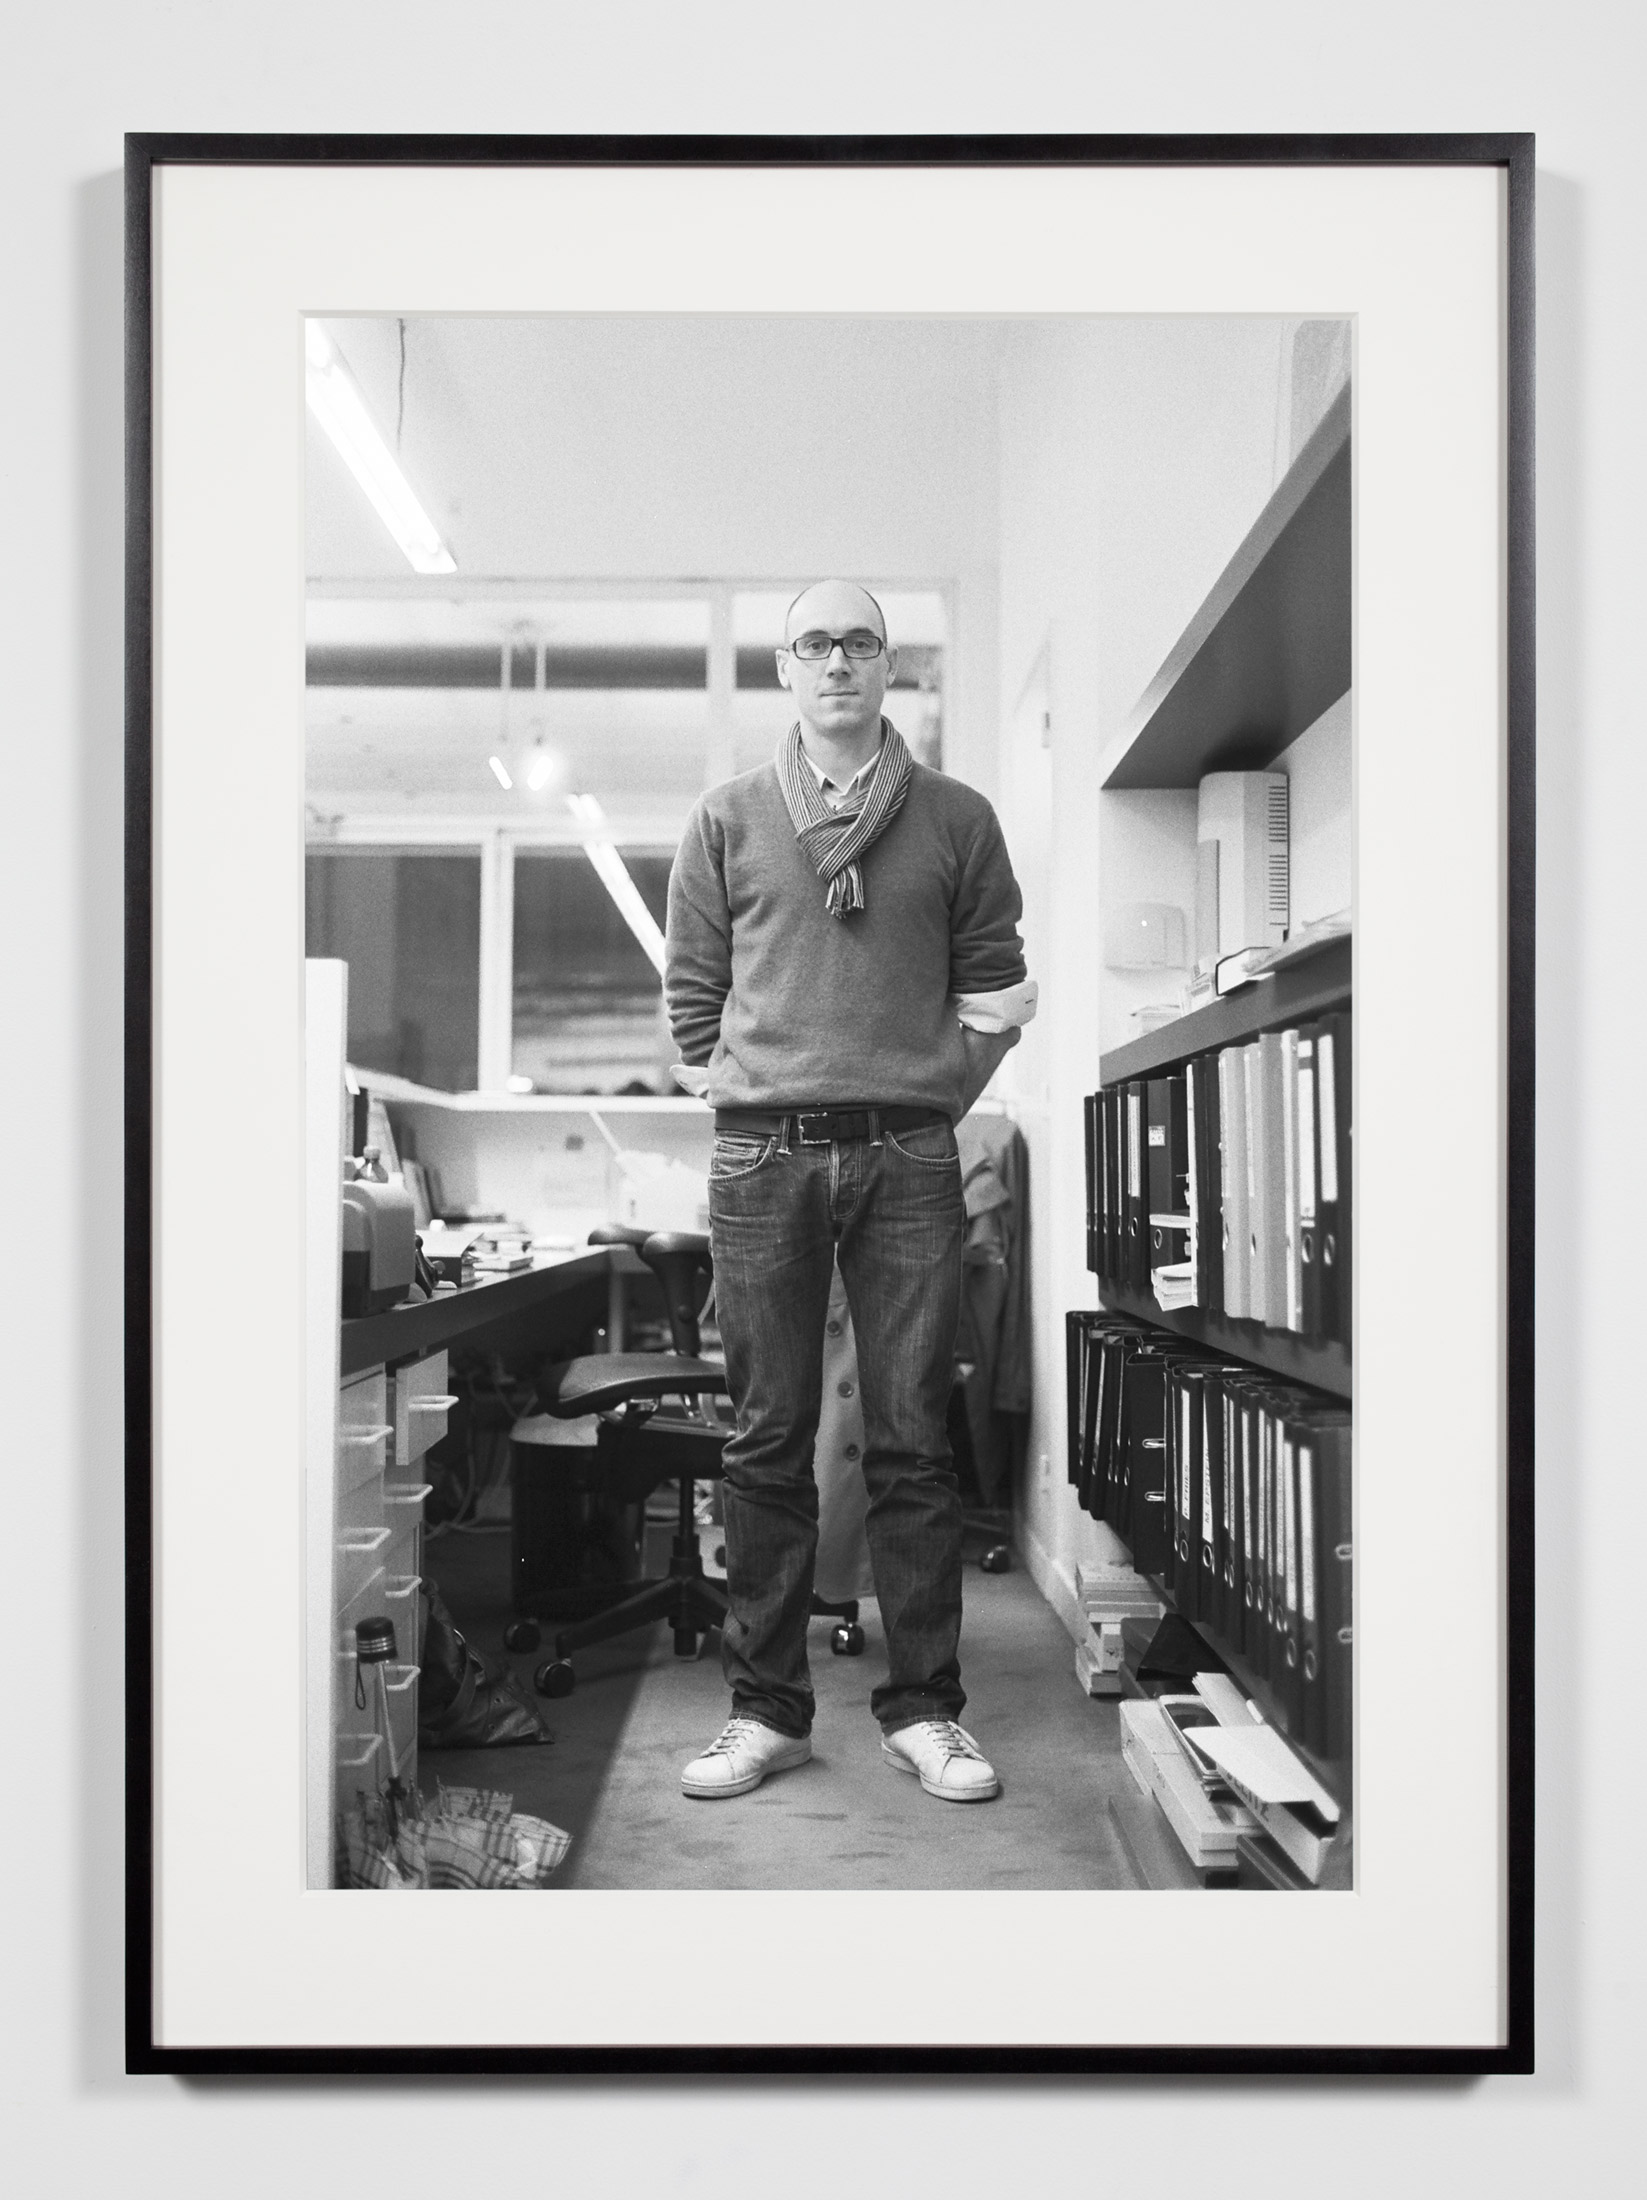 Gallery Operations and Logistics Manager, Brussels, Belgium, November 6, 2008    2011   Epson Ultrachrome K3 archival ink jet print on Hahnemühle Photo Rag paper  36 3/8 x 26 3/8 inches   Industrial Portraits, 2008–